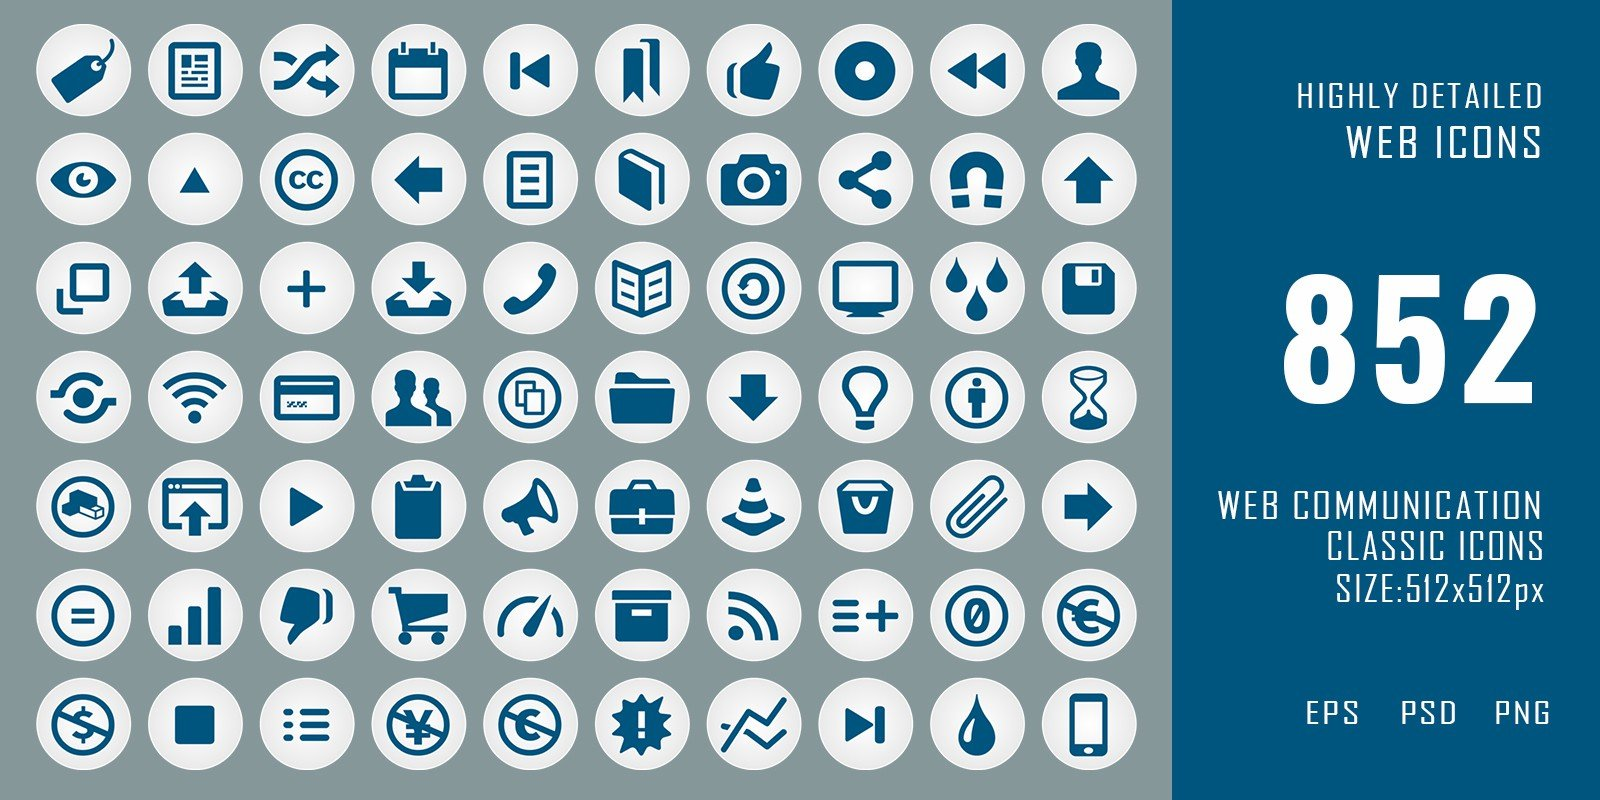 852 Classic Web Communication Icons Pack